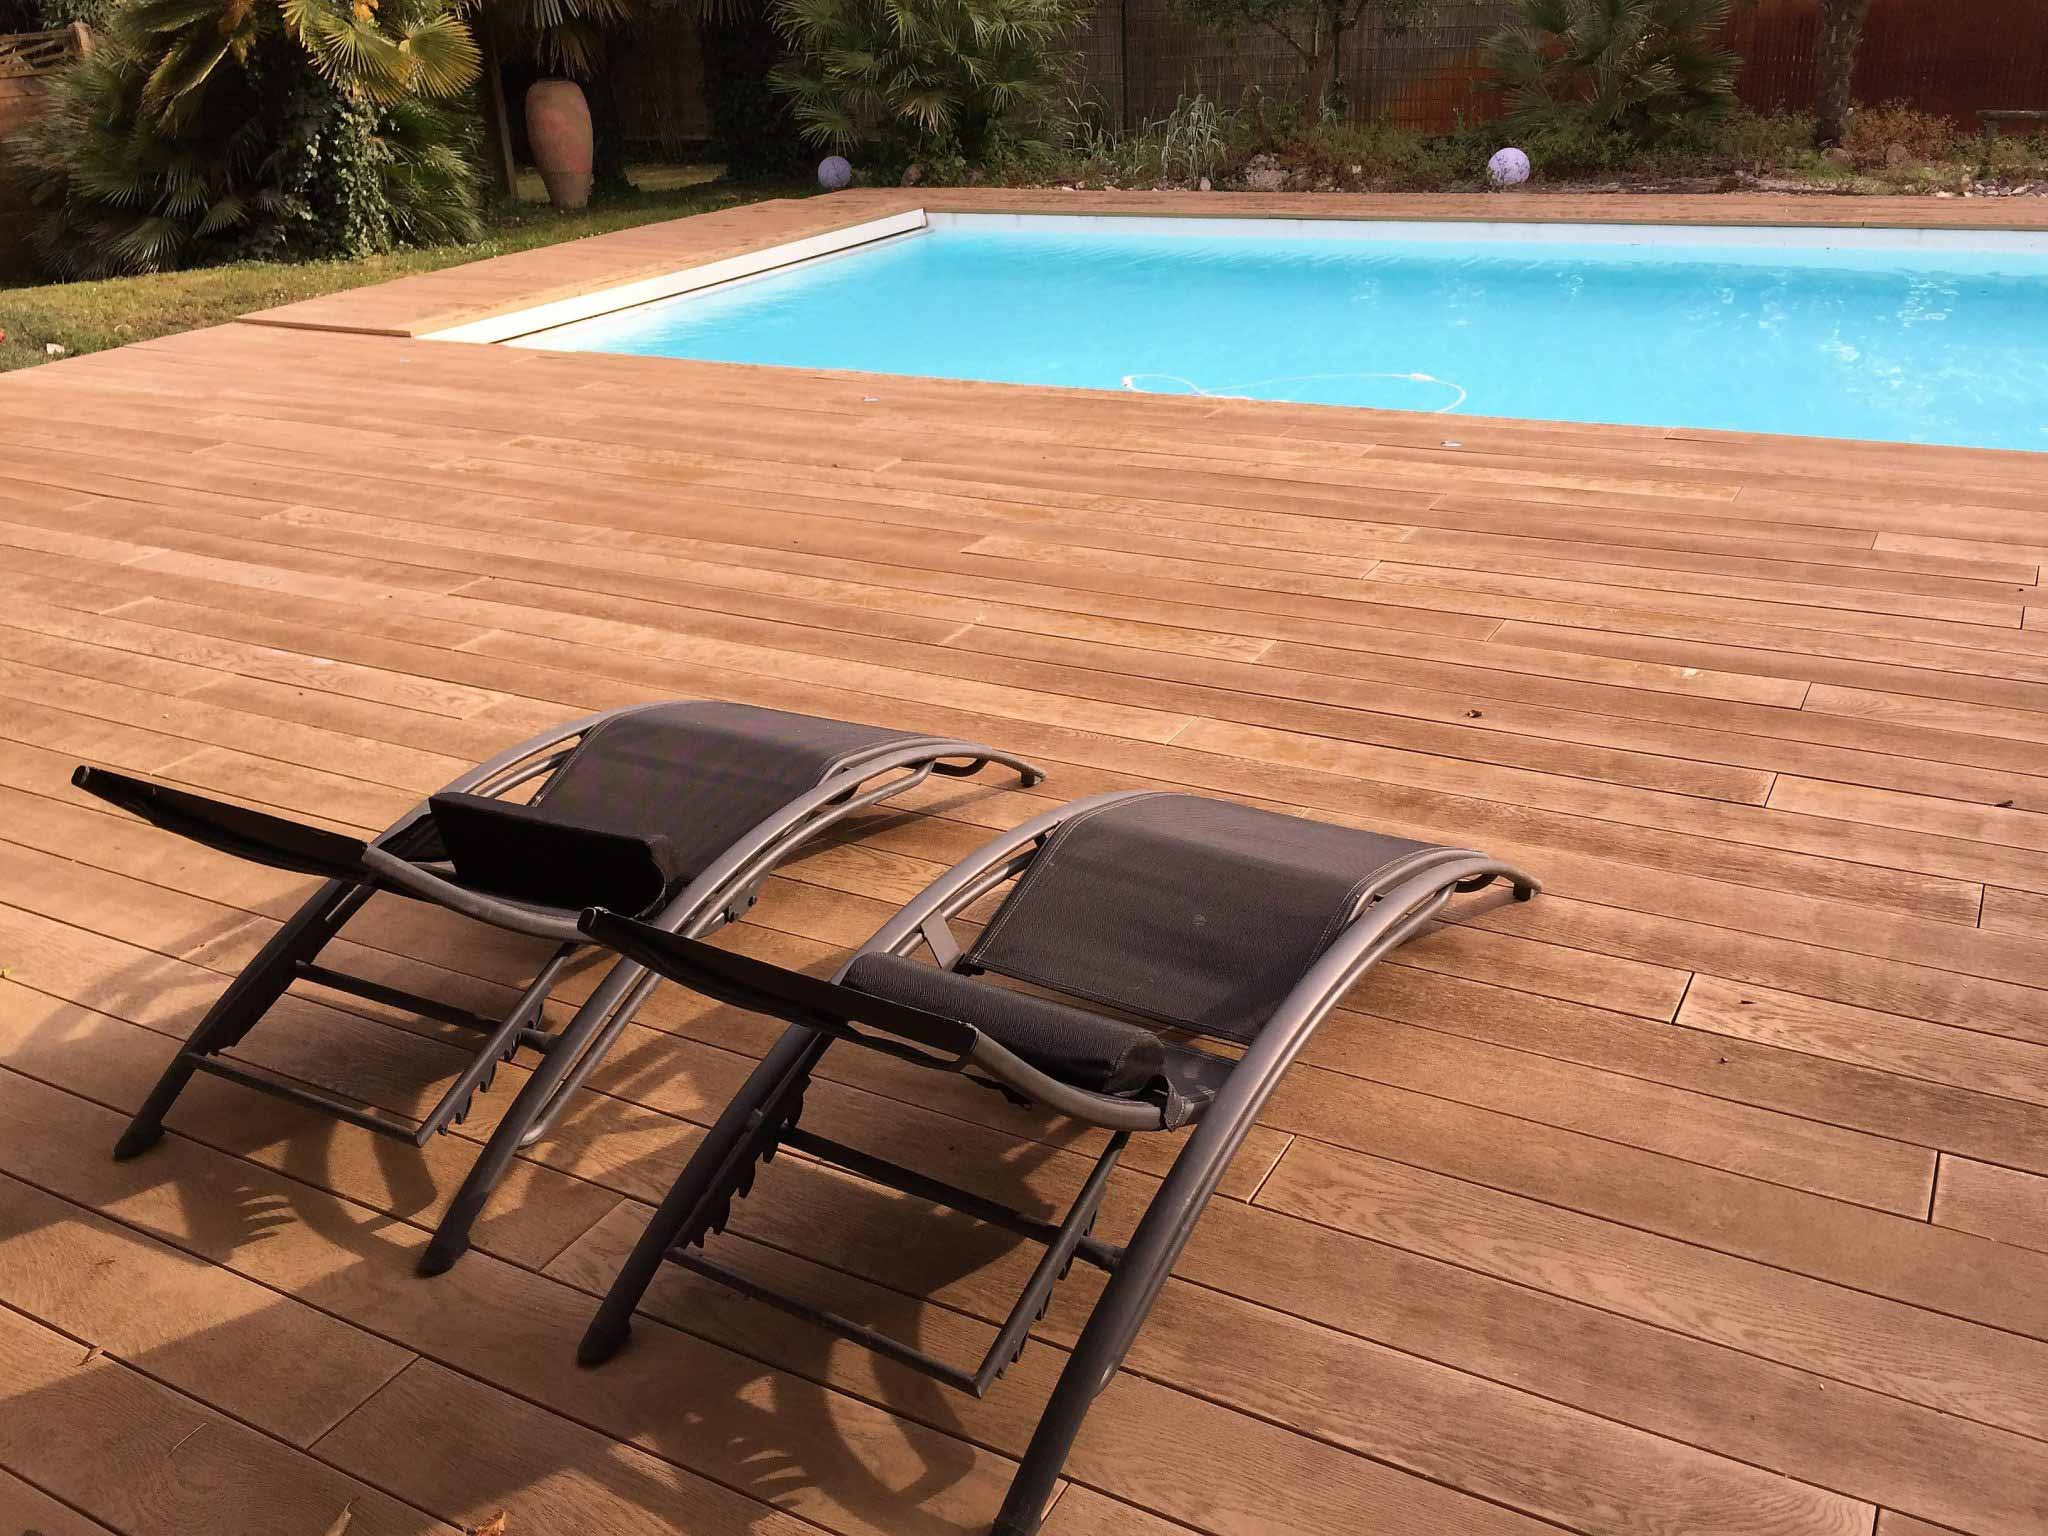 terrasse composite resine minerale ansyears millboard piscine bordeaux merignac gironde angouleme charente arbao